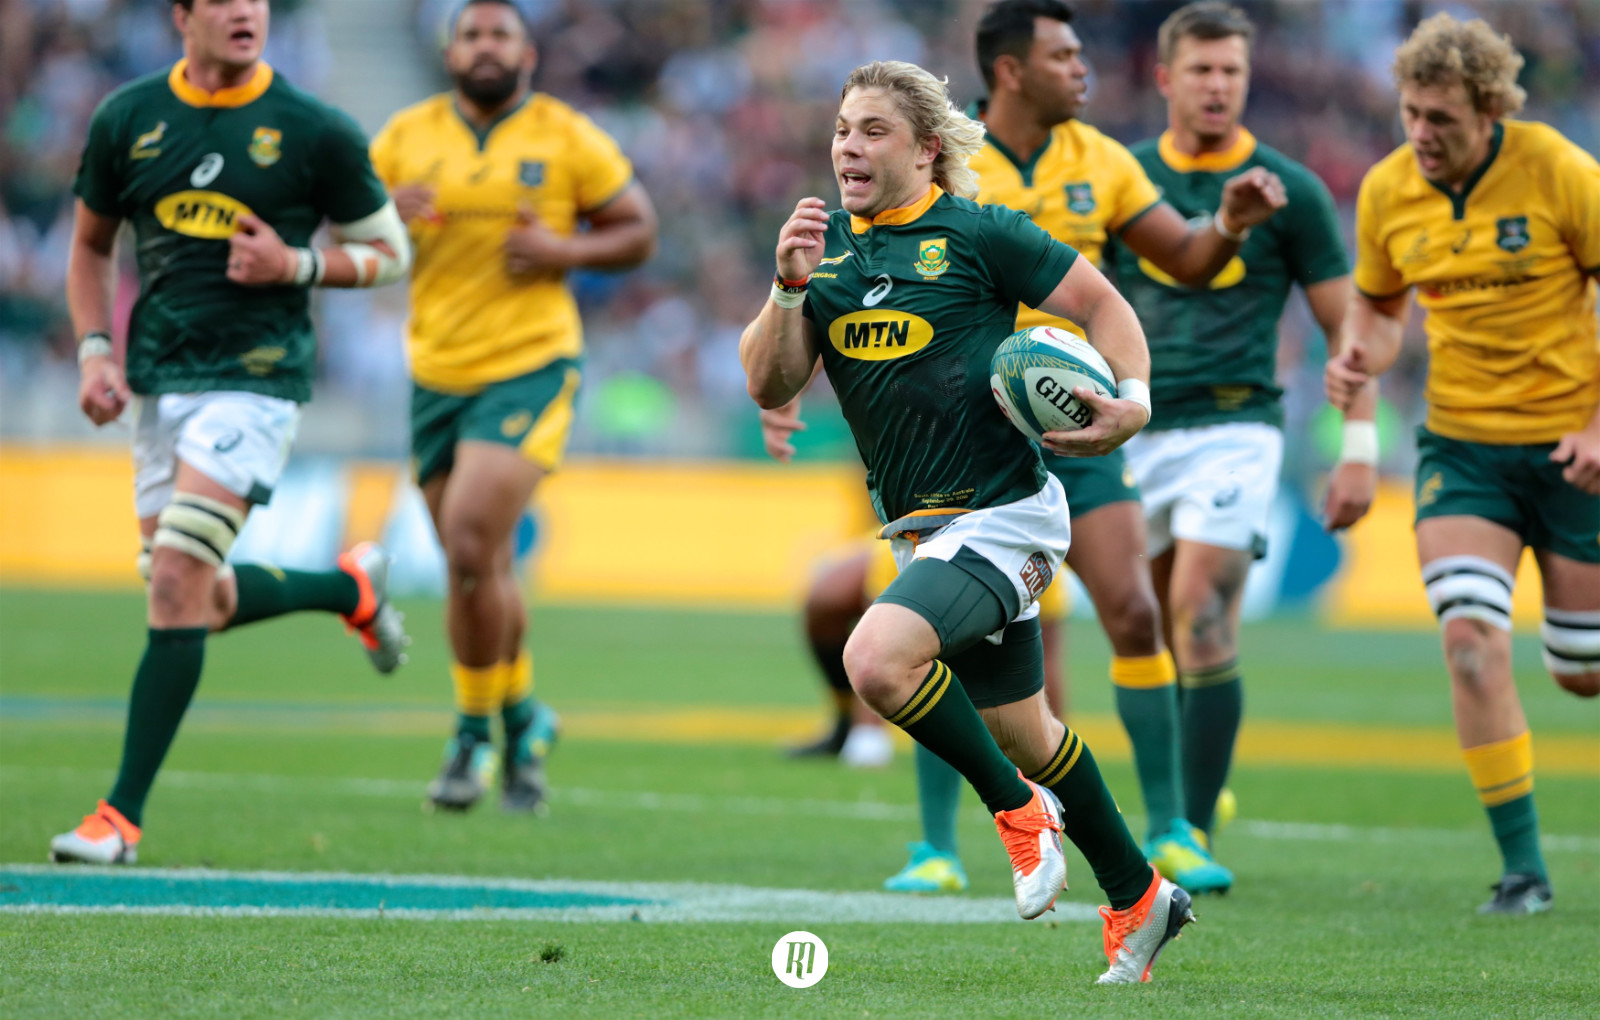 World Rugby's Nations Championship: the more I see, the more I like